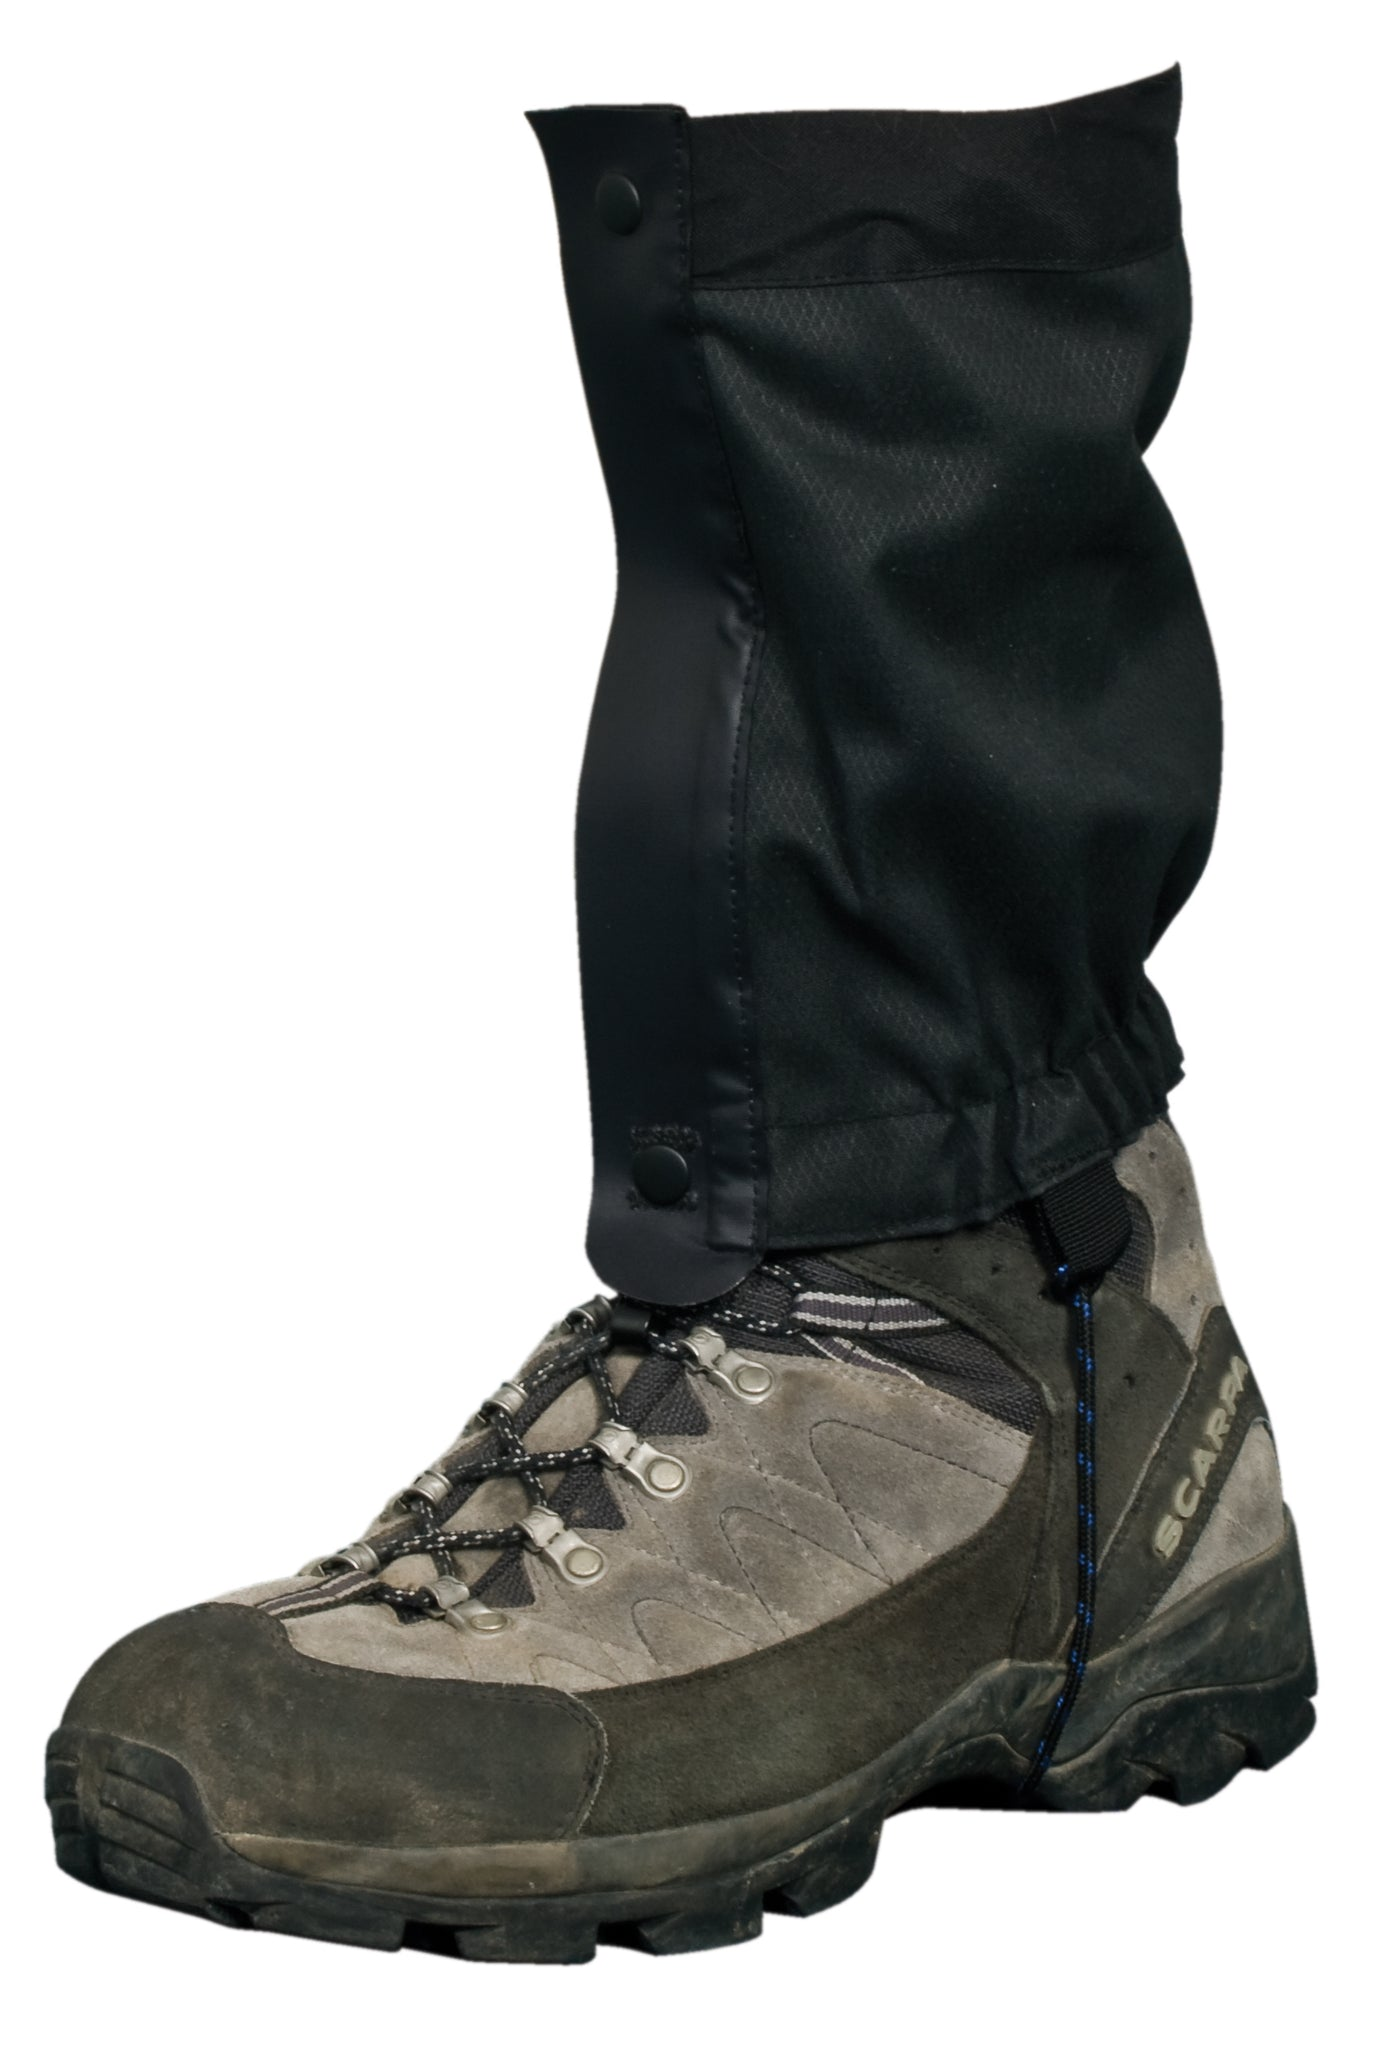 Sherpa Gaiters Canvas - Short